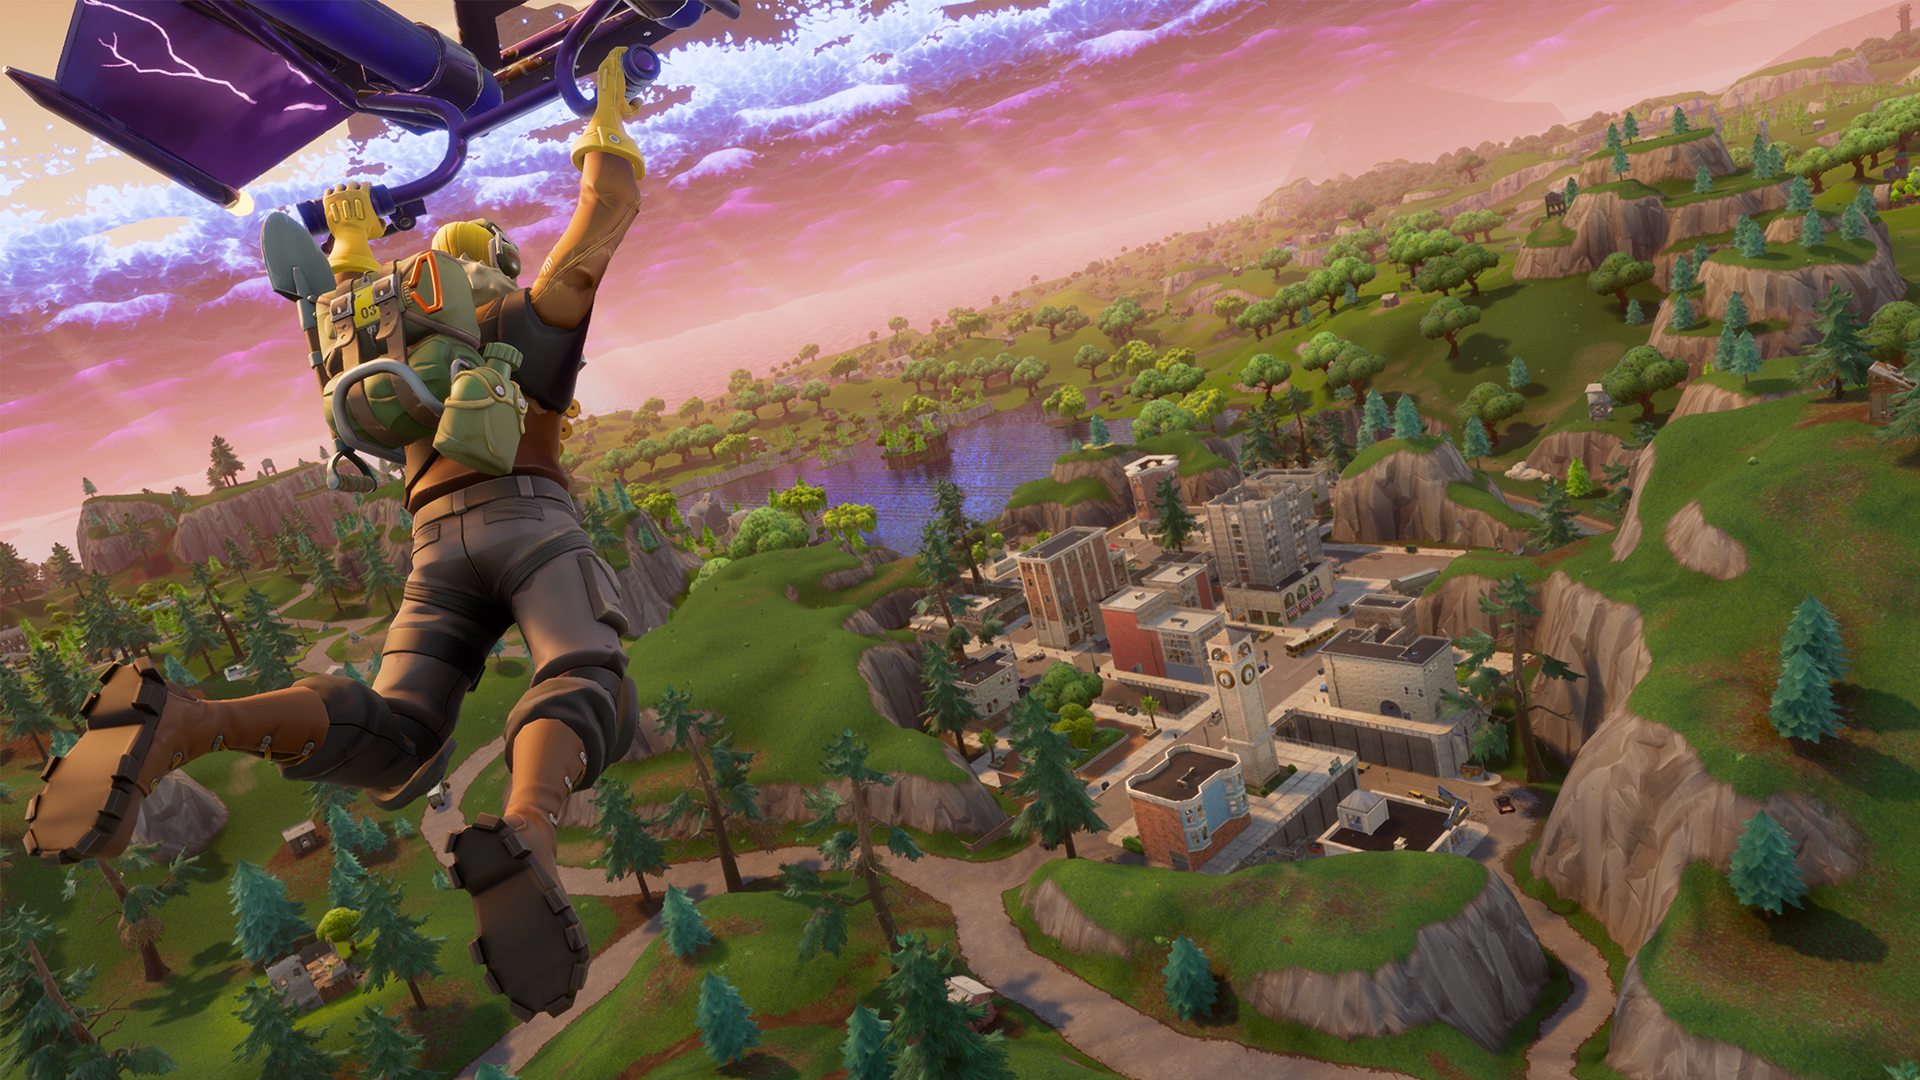 Fortnite Available On Nintendo Switch For Free Right Now